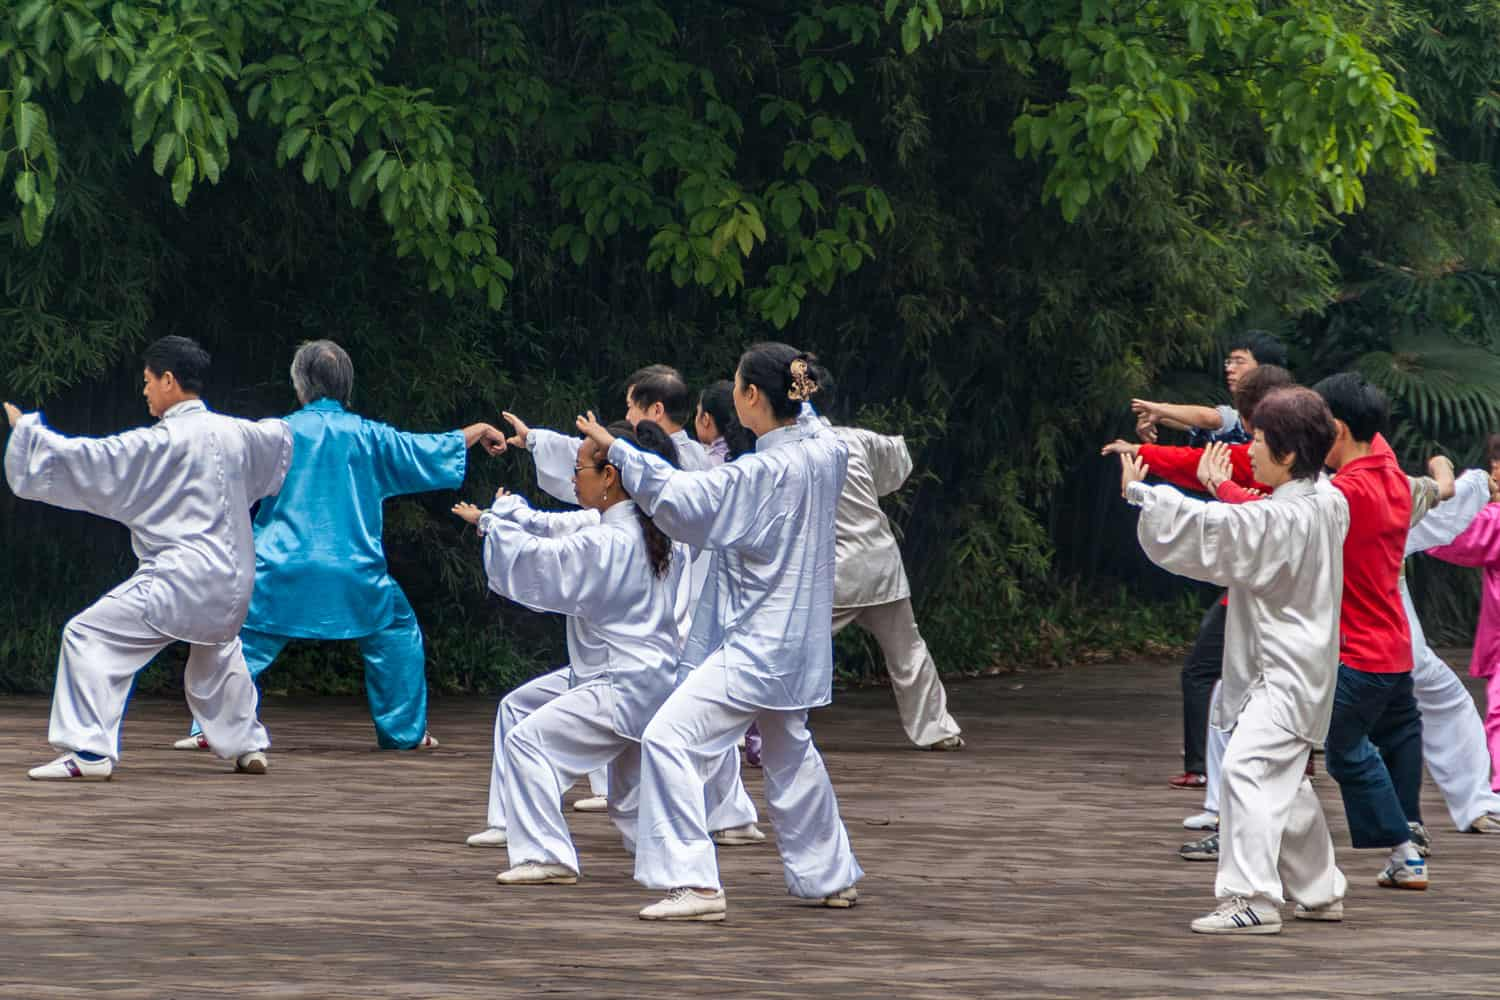 Group of people in silver, blue and red silk outfits practicing synchronized Tai Chi exercises in front of green foliage wall